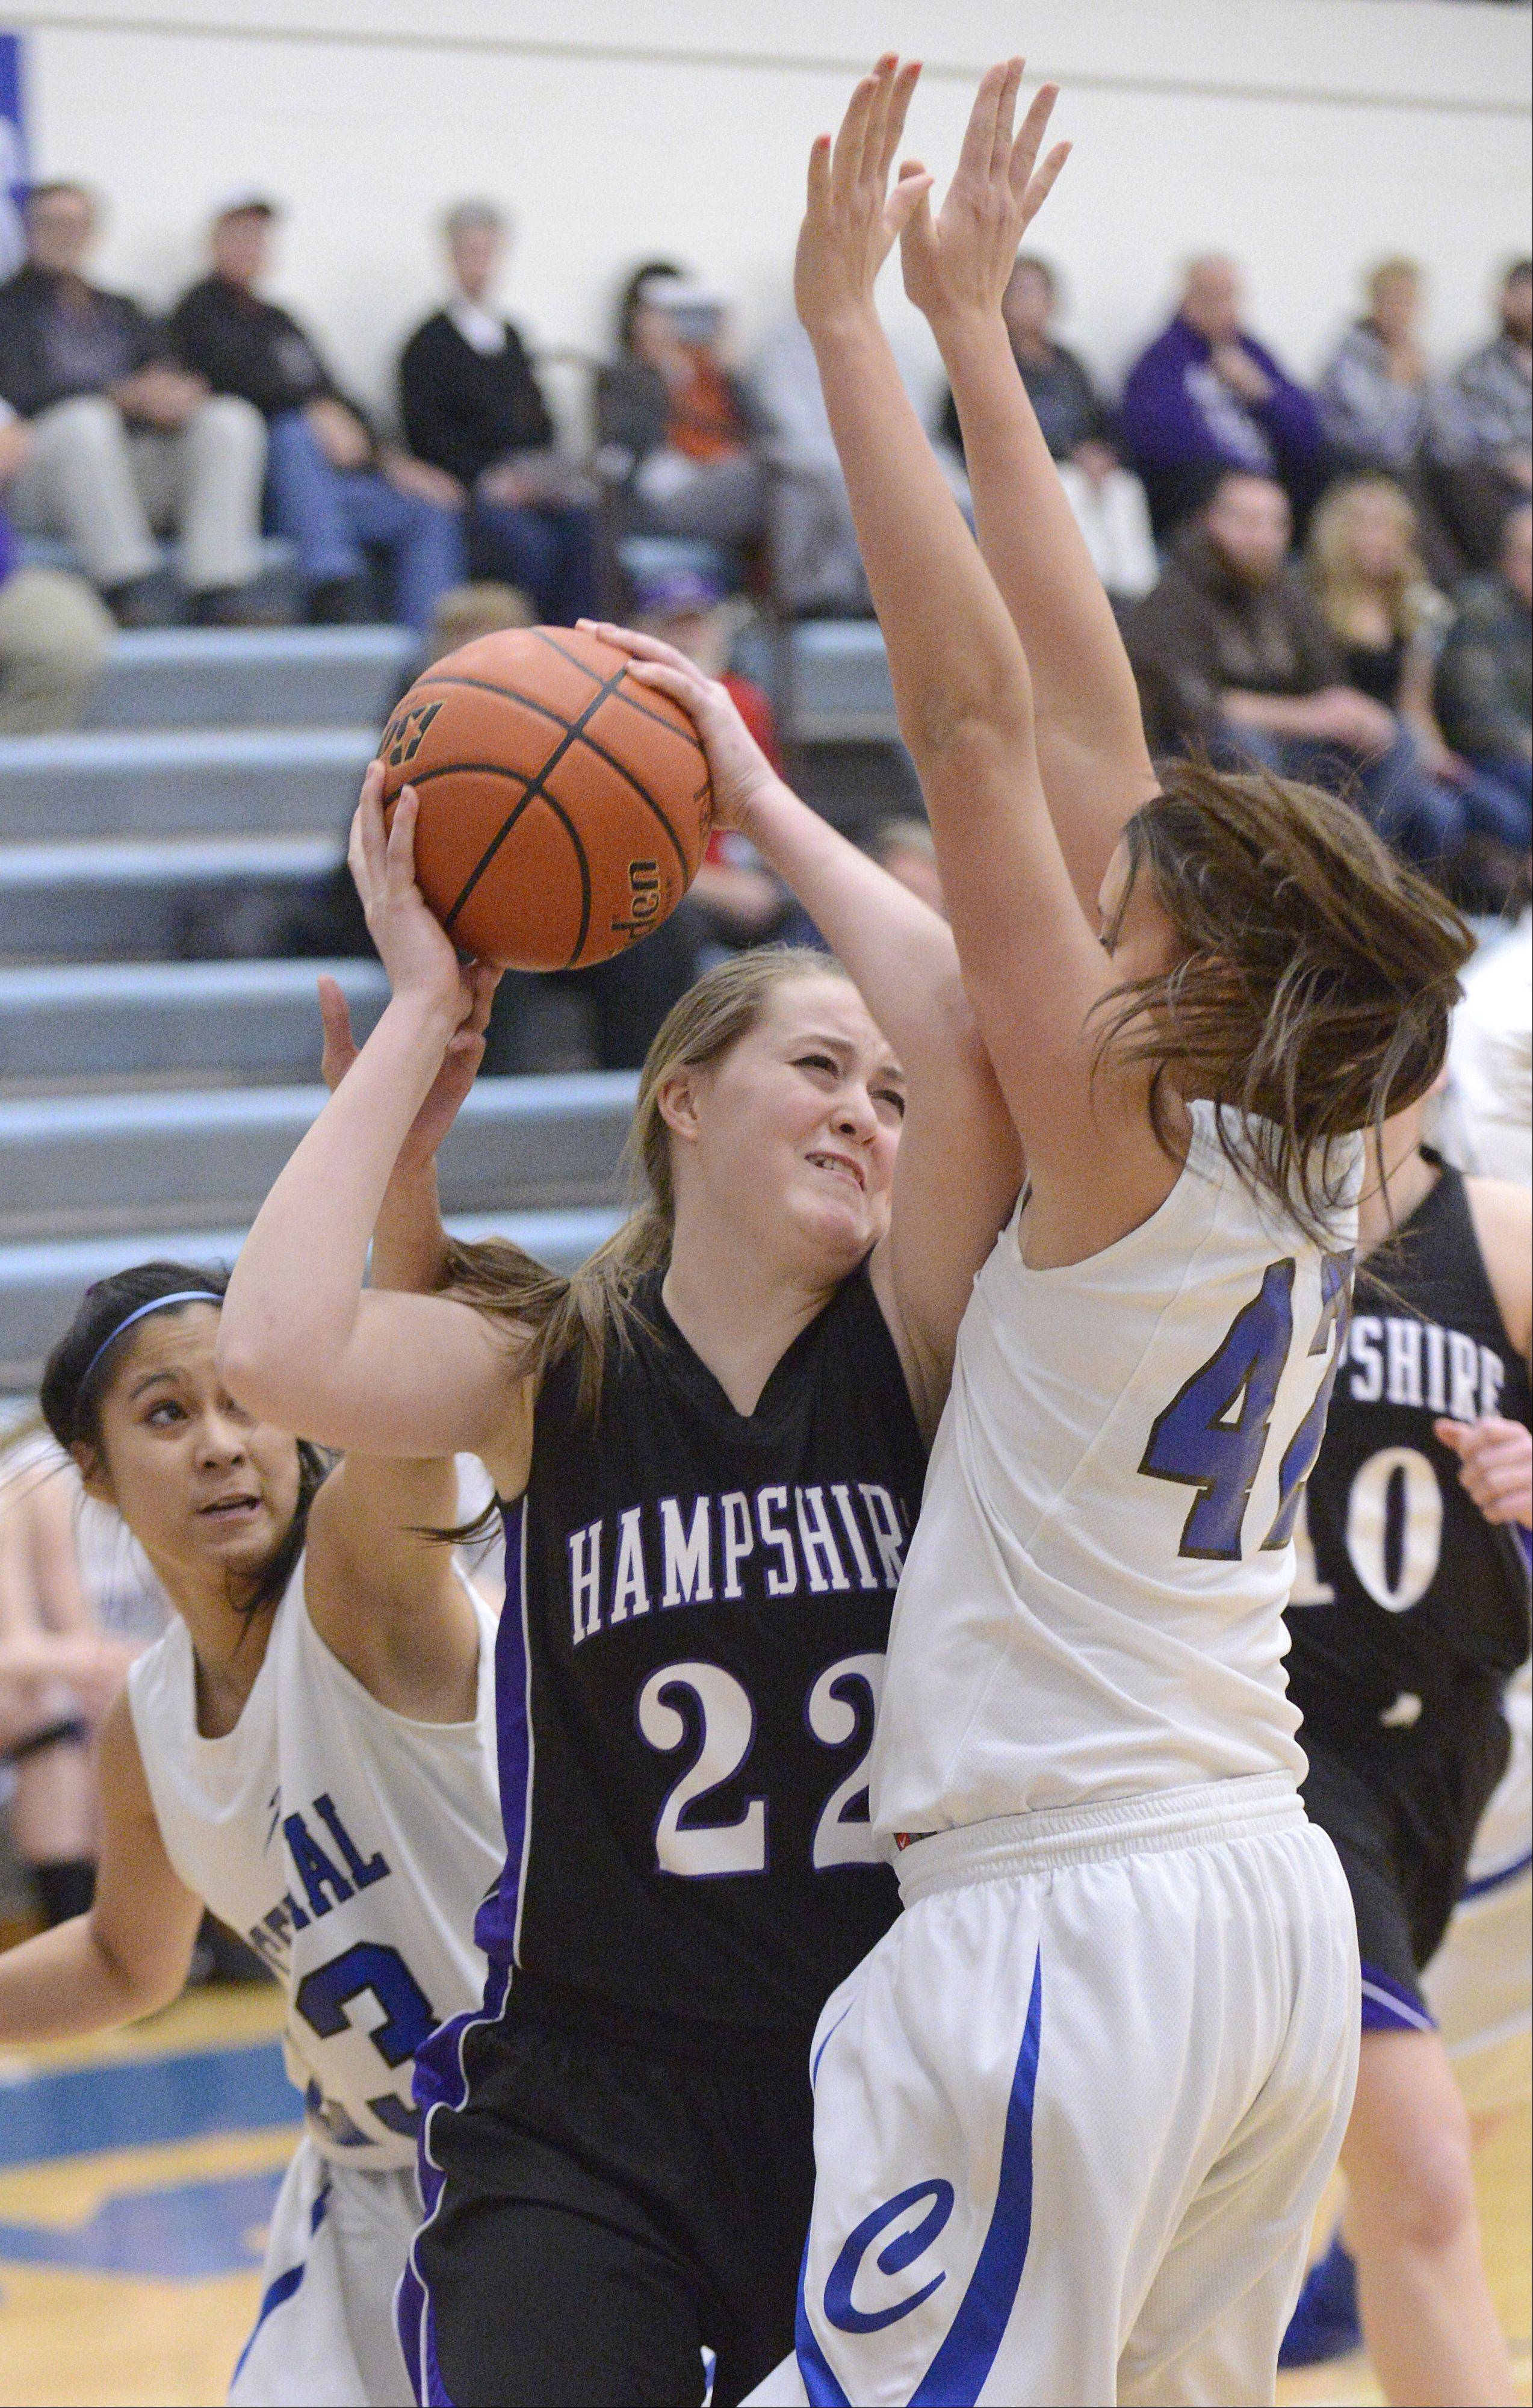 Hampshire's Emma Beniot is covered by Burlington Central's Camille Delacruz and Alison Colby during Wednesday's Class 3A regional basketball game.